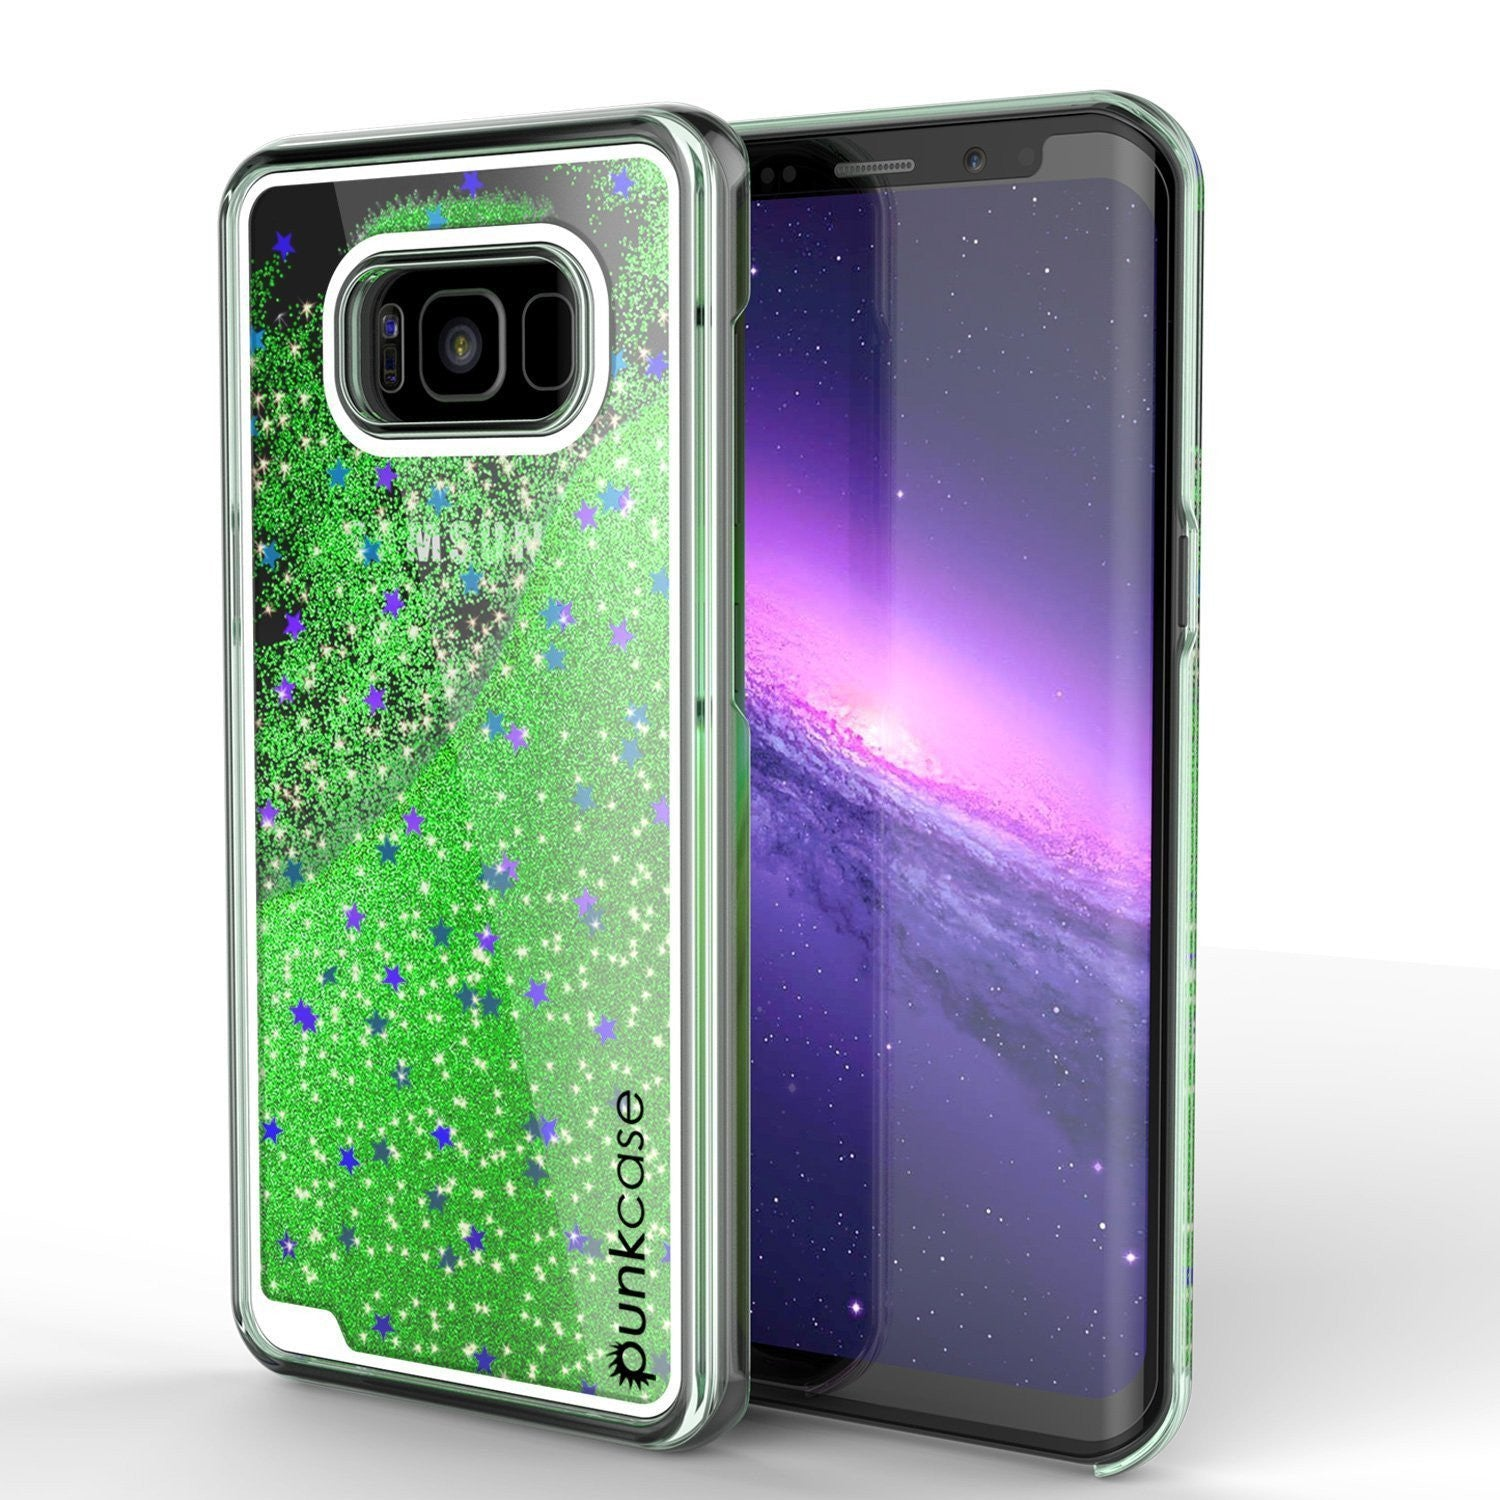 Galaxy S8 Plus Case, Punkcase [Liquid Series] Protective Dual Layer Floating Glitter Cover + PunkShield Screen Protector for Samsung S8 [Green]